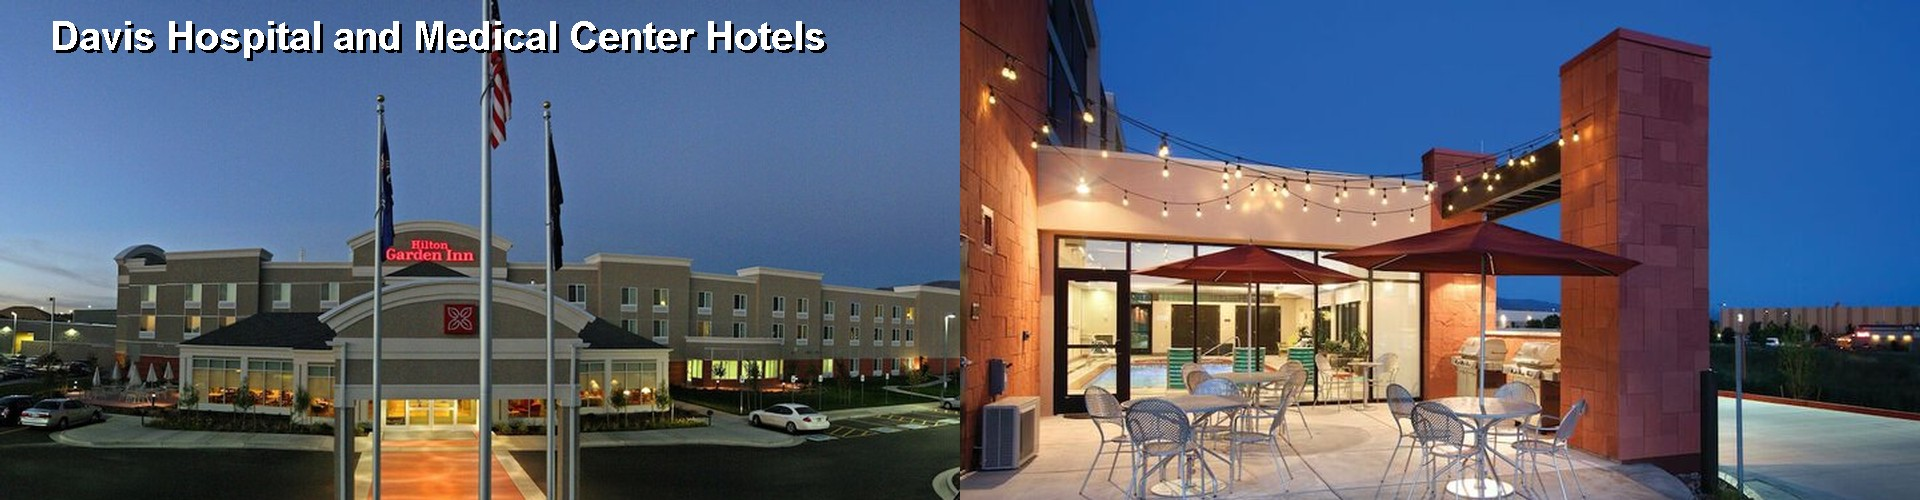 5 Best Hotels near Davis Hospital and Medical Center